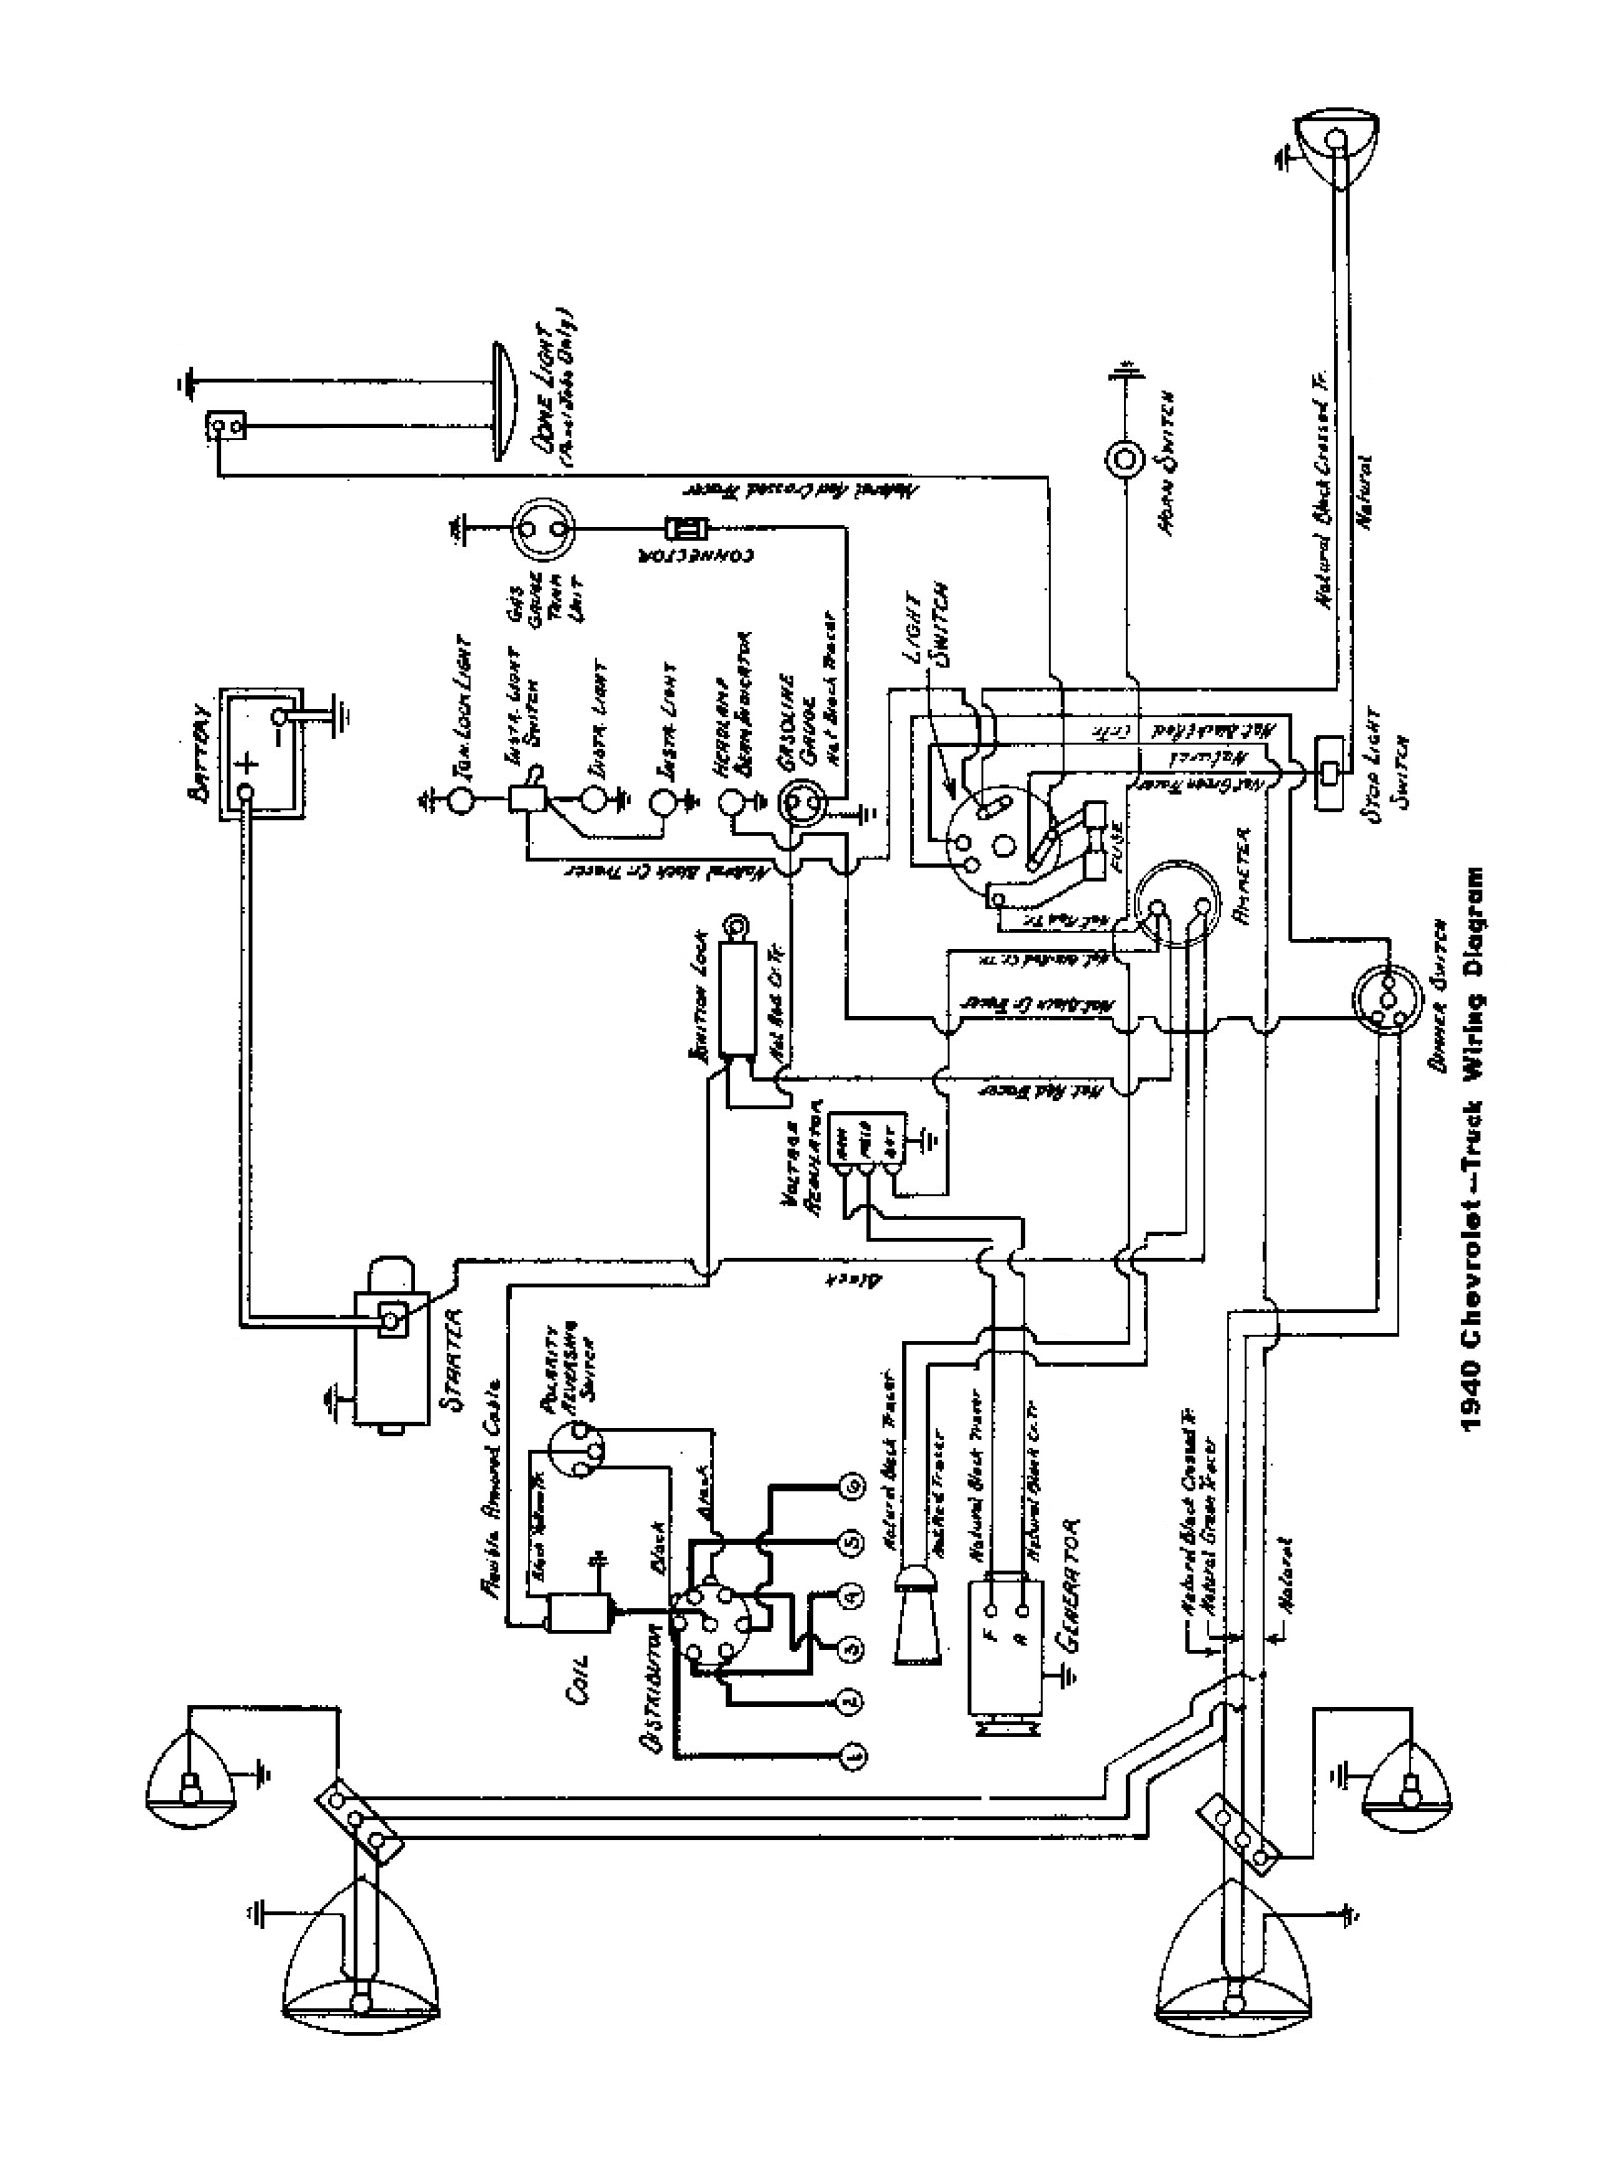 Gm Ignition Diagram Archive Of Automotive Wiring Hei Chevrolet Schemes Rh Cabanaselgolfo Com Coil